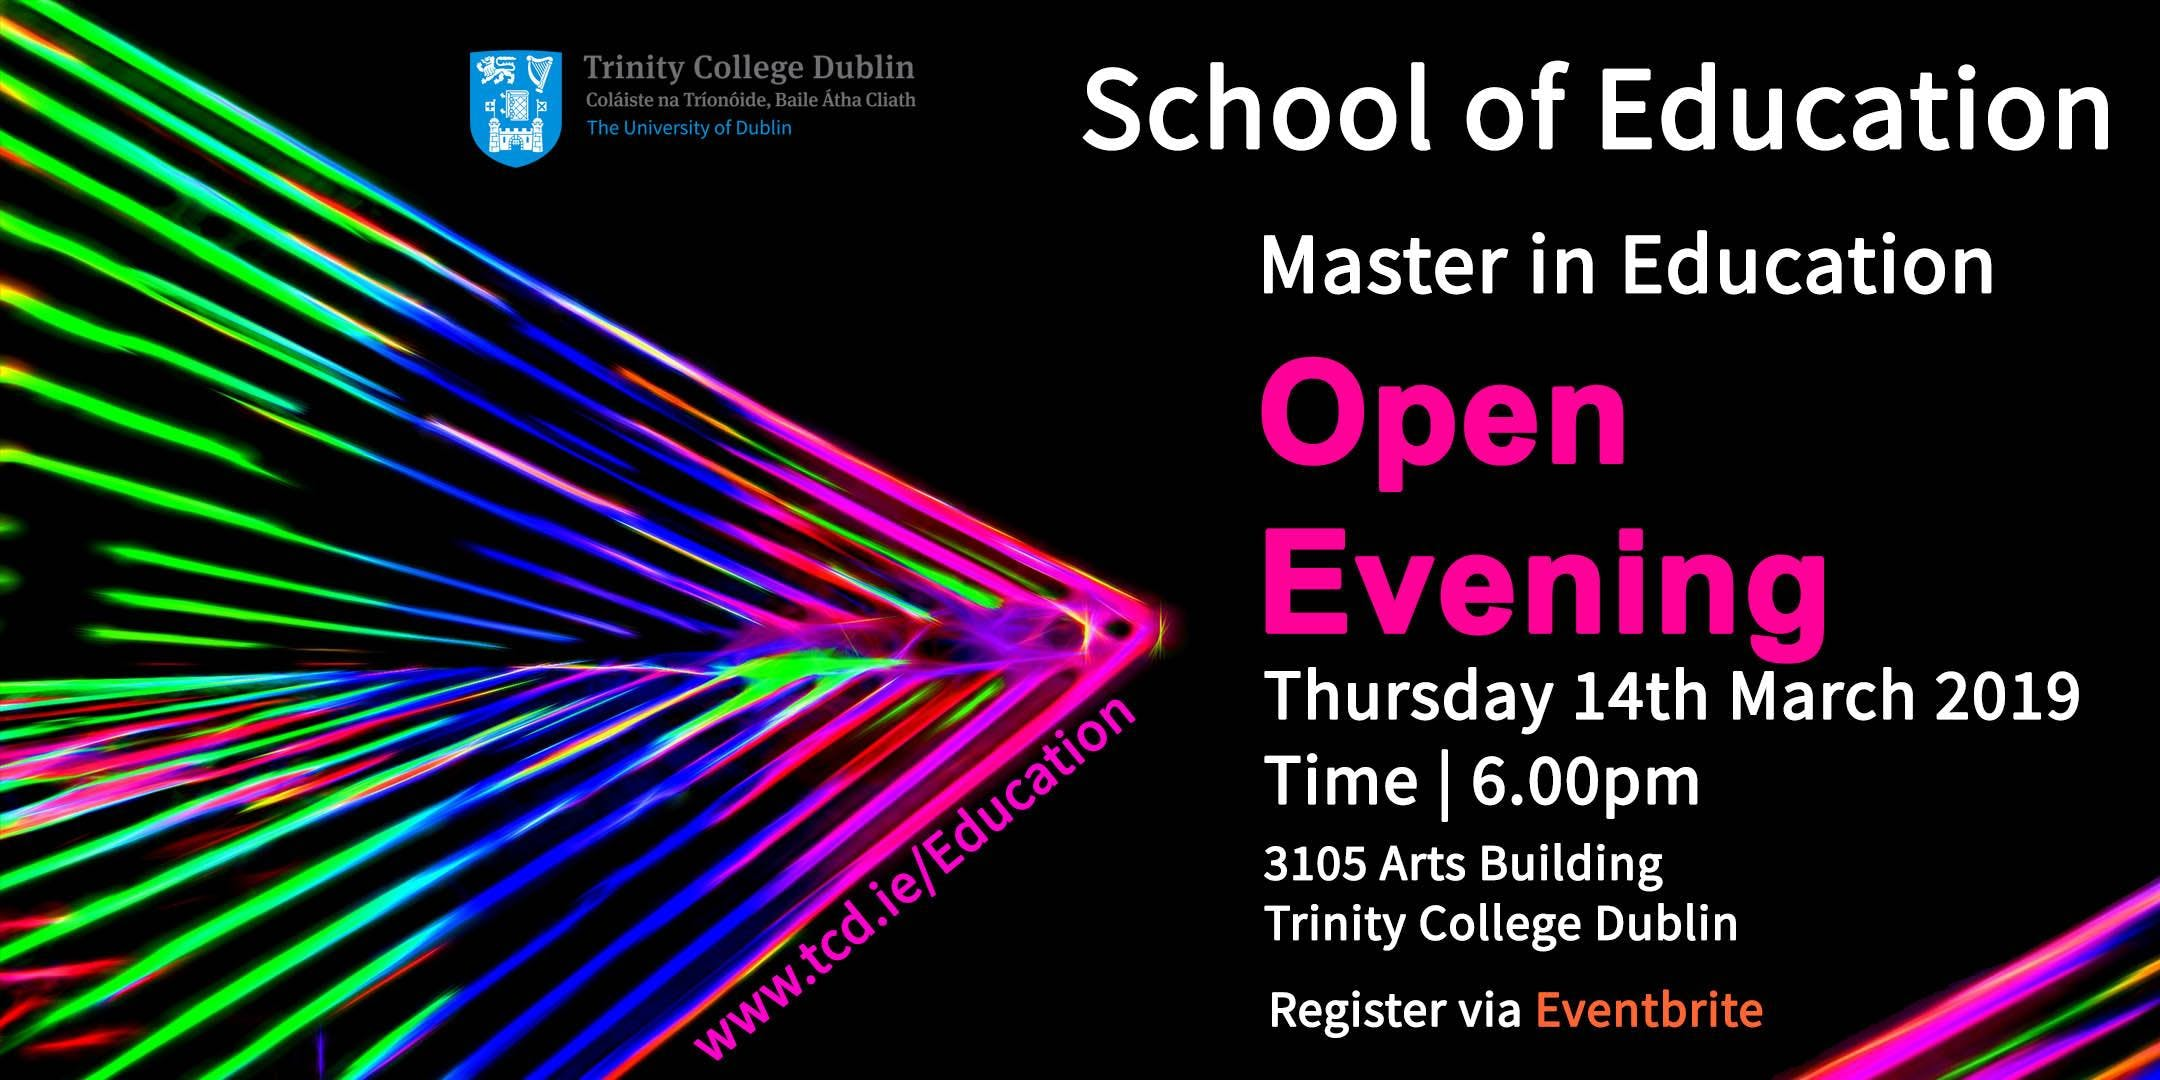 Master in Education Open Evening